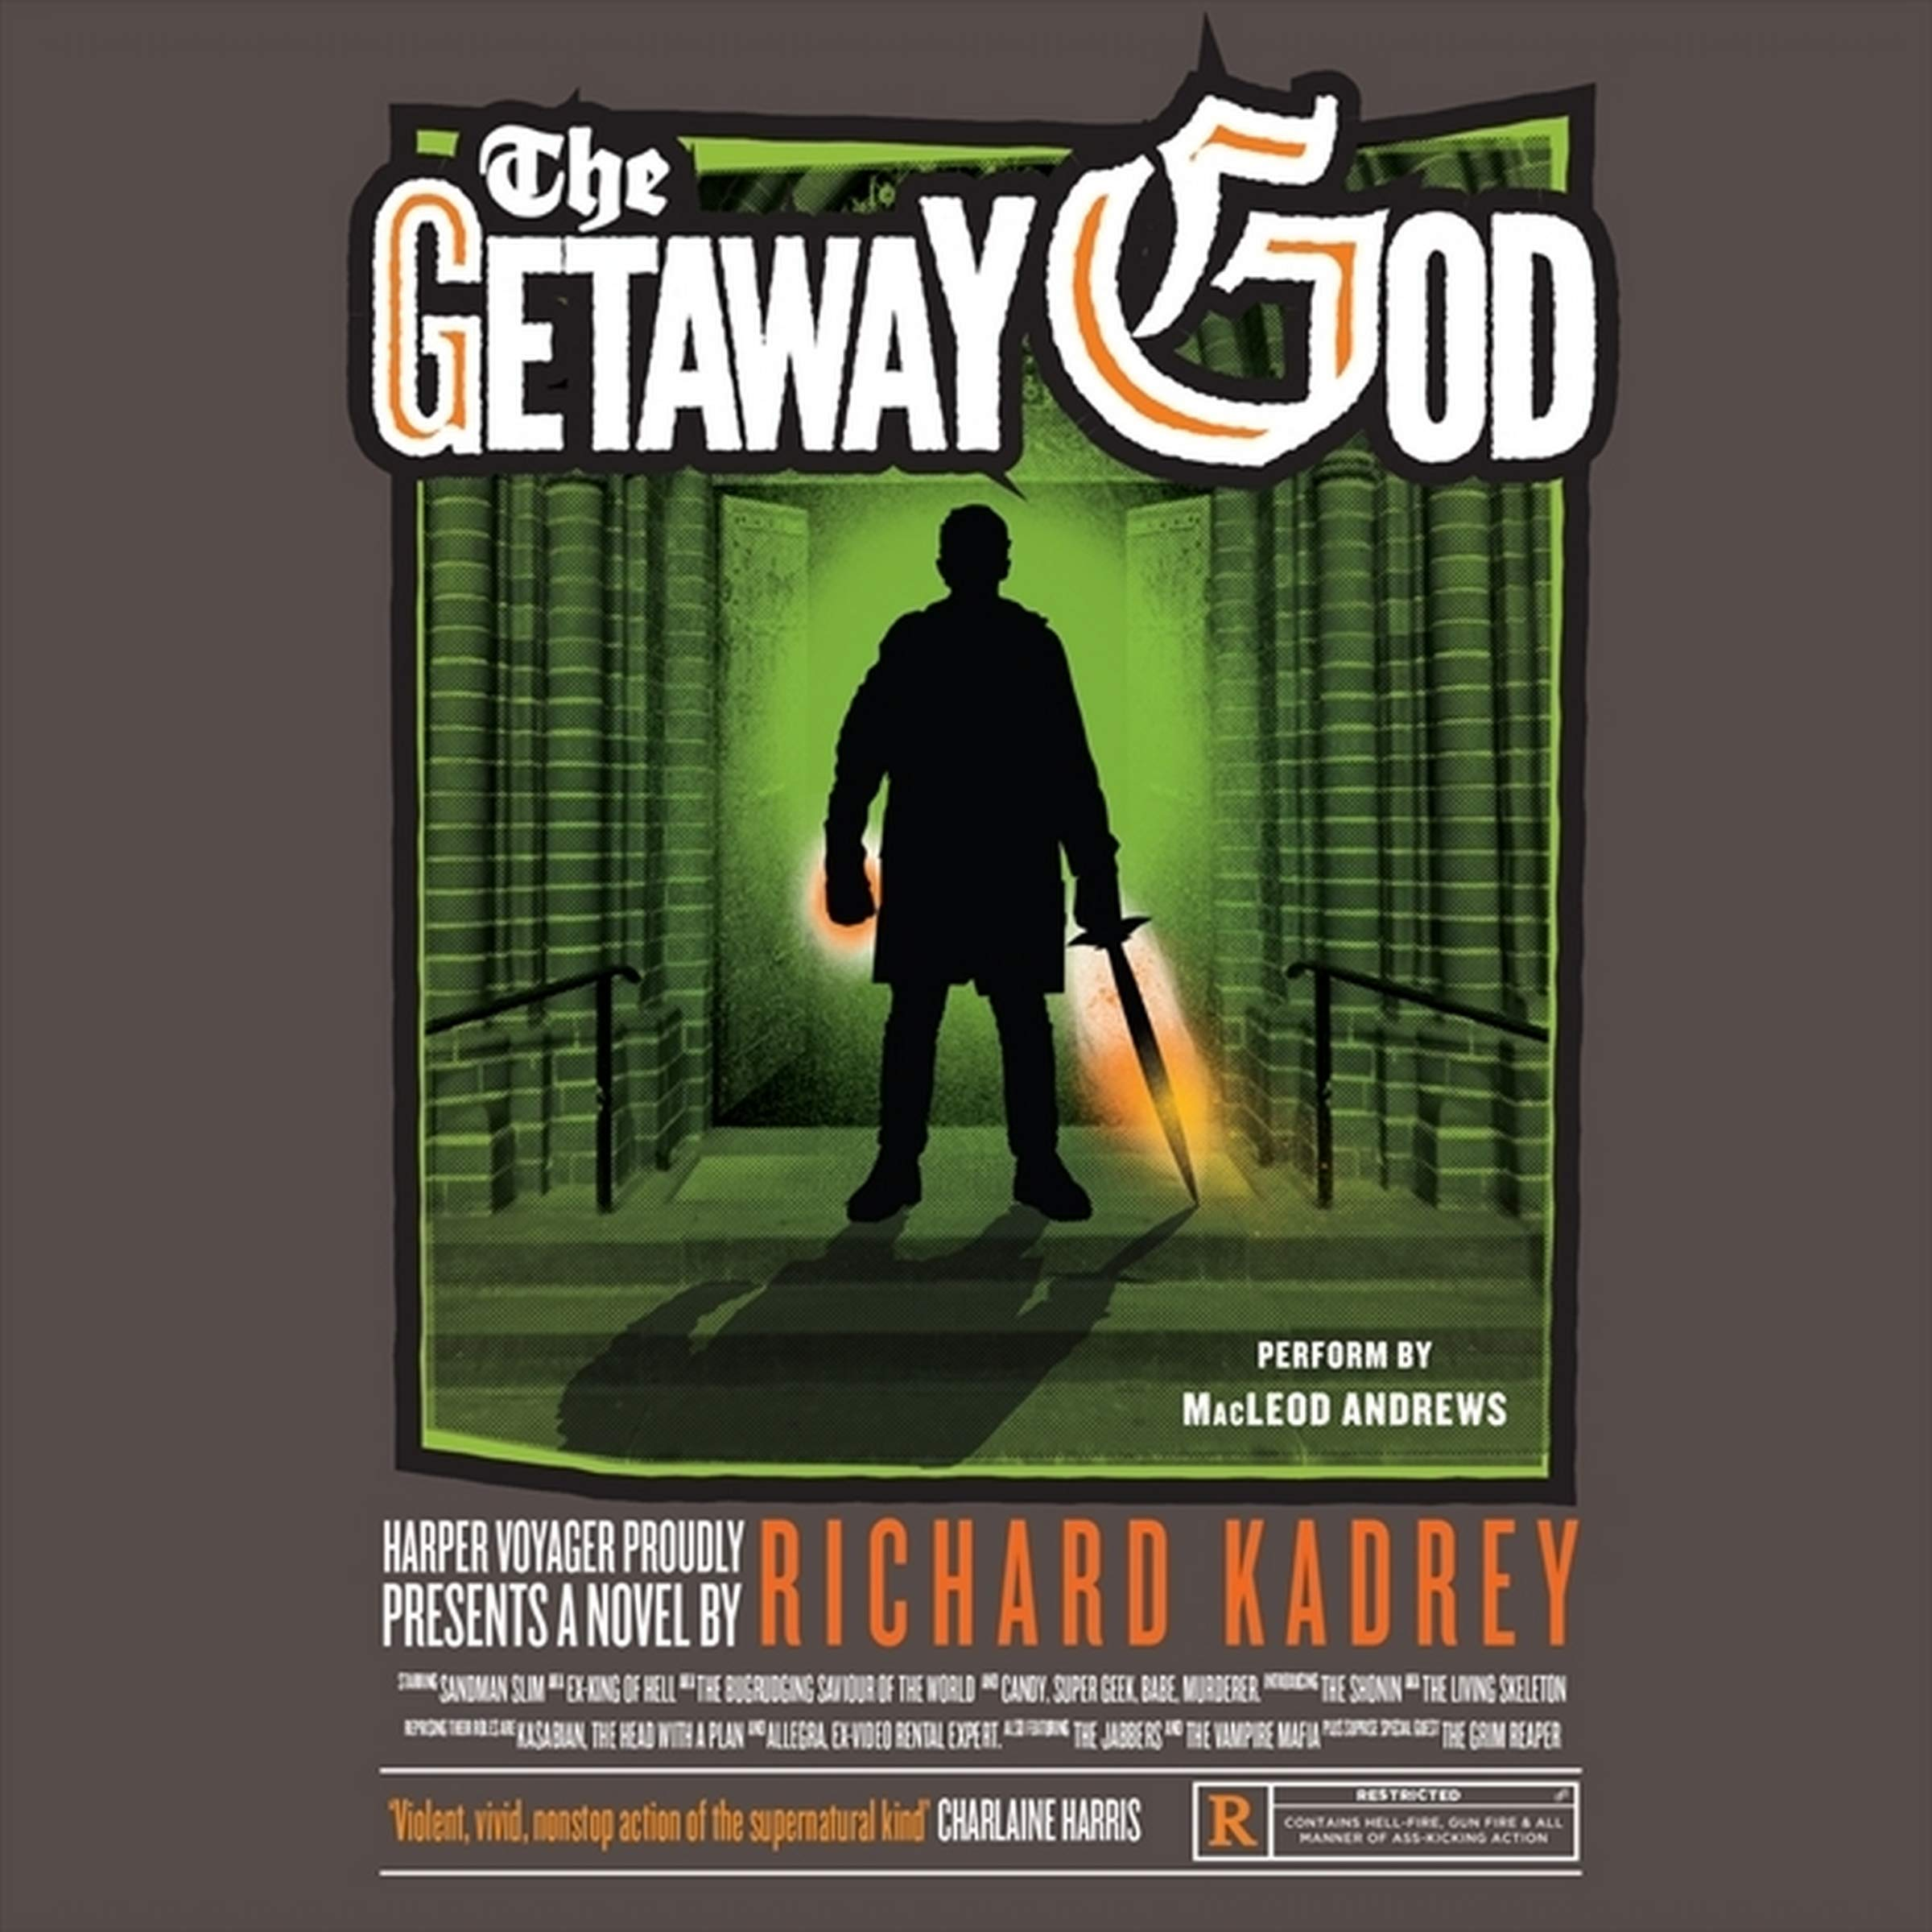 The Getaway God (Sandman Slim Novels): Amazon.es: Richard Kadrey, MacLeod Andrews: Libros en idiomas extranjeros